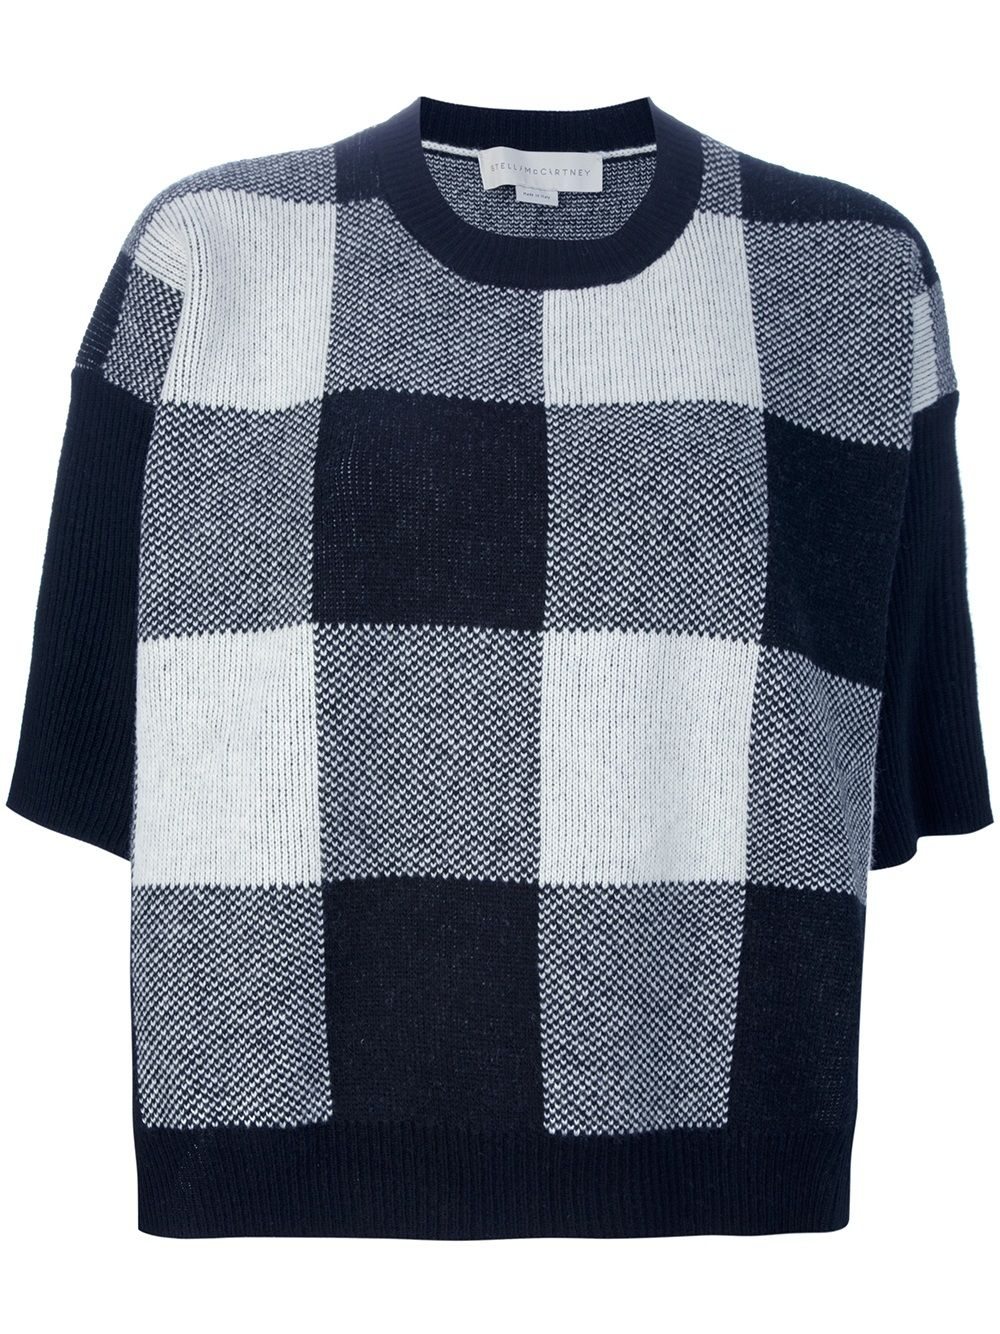 Are 2,000 Designer Sweaters Fashion's New It' Item